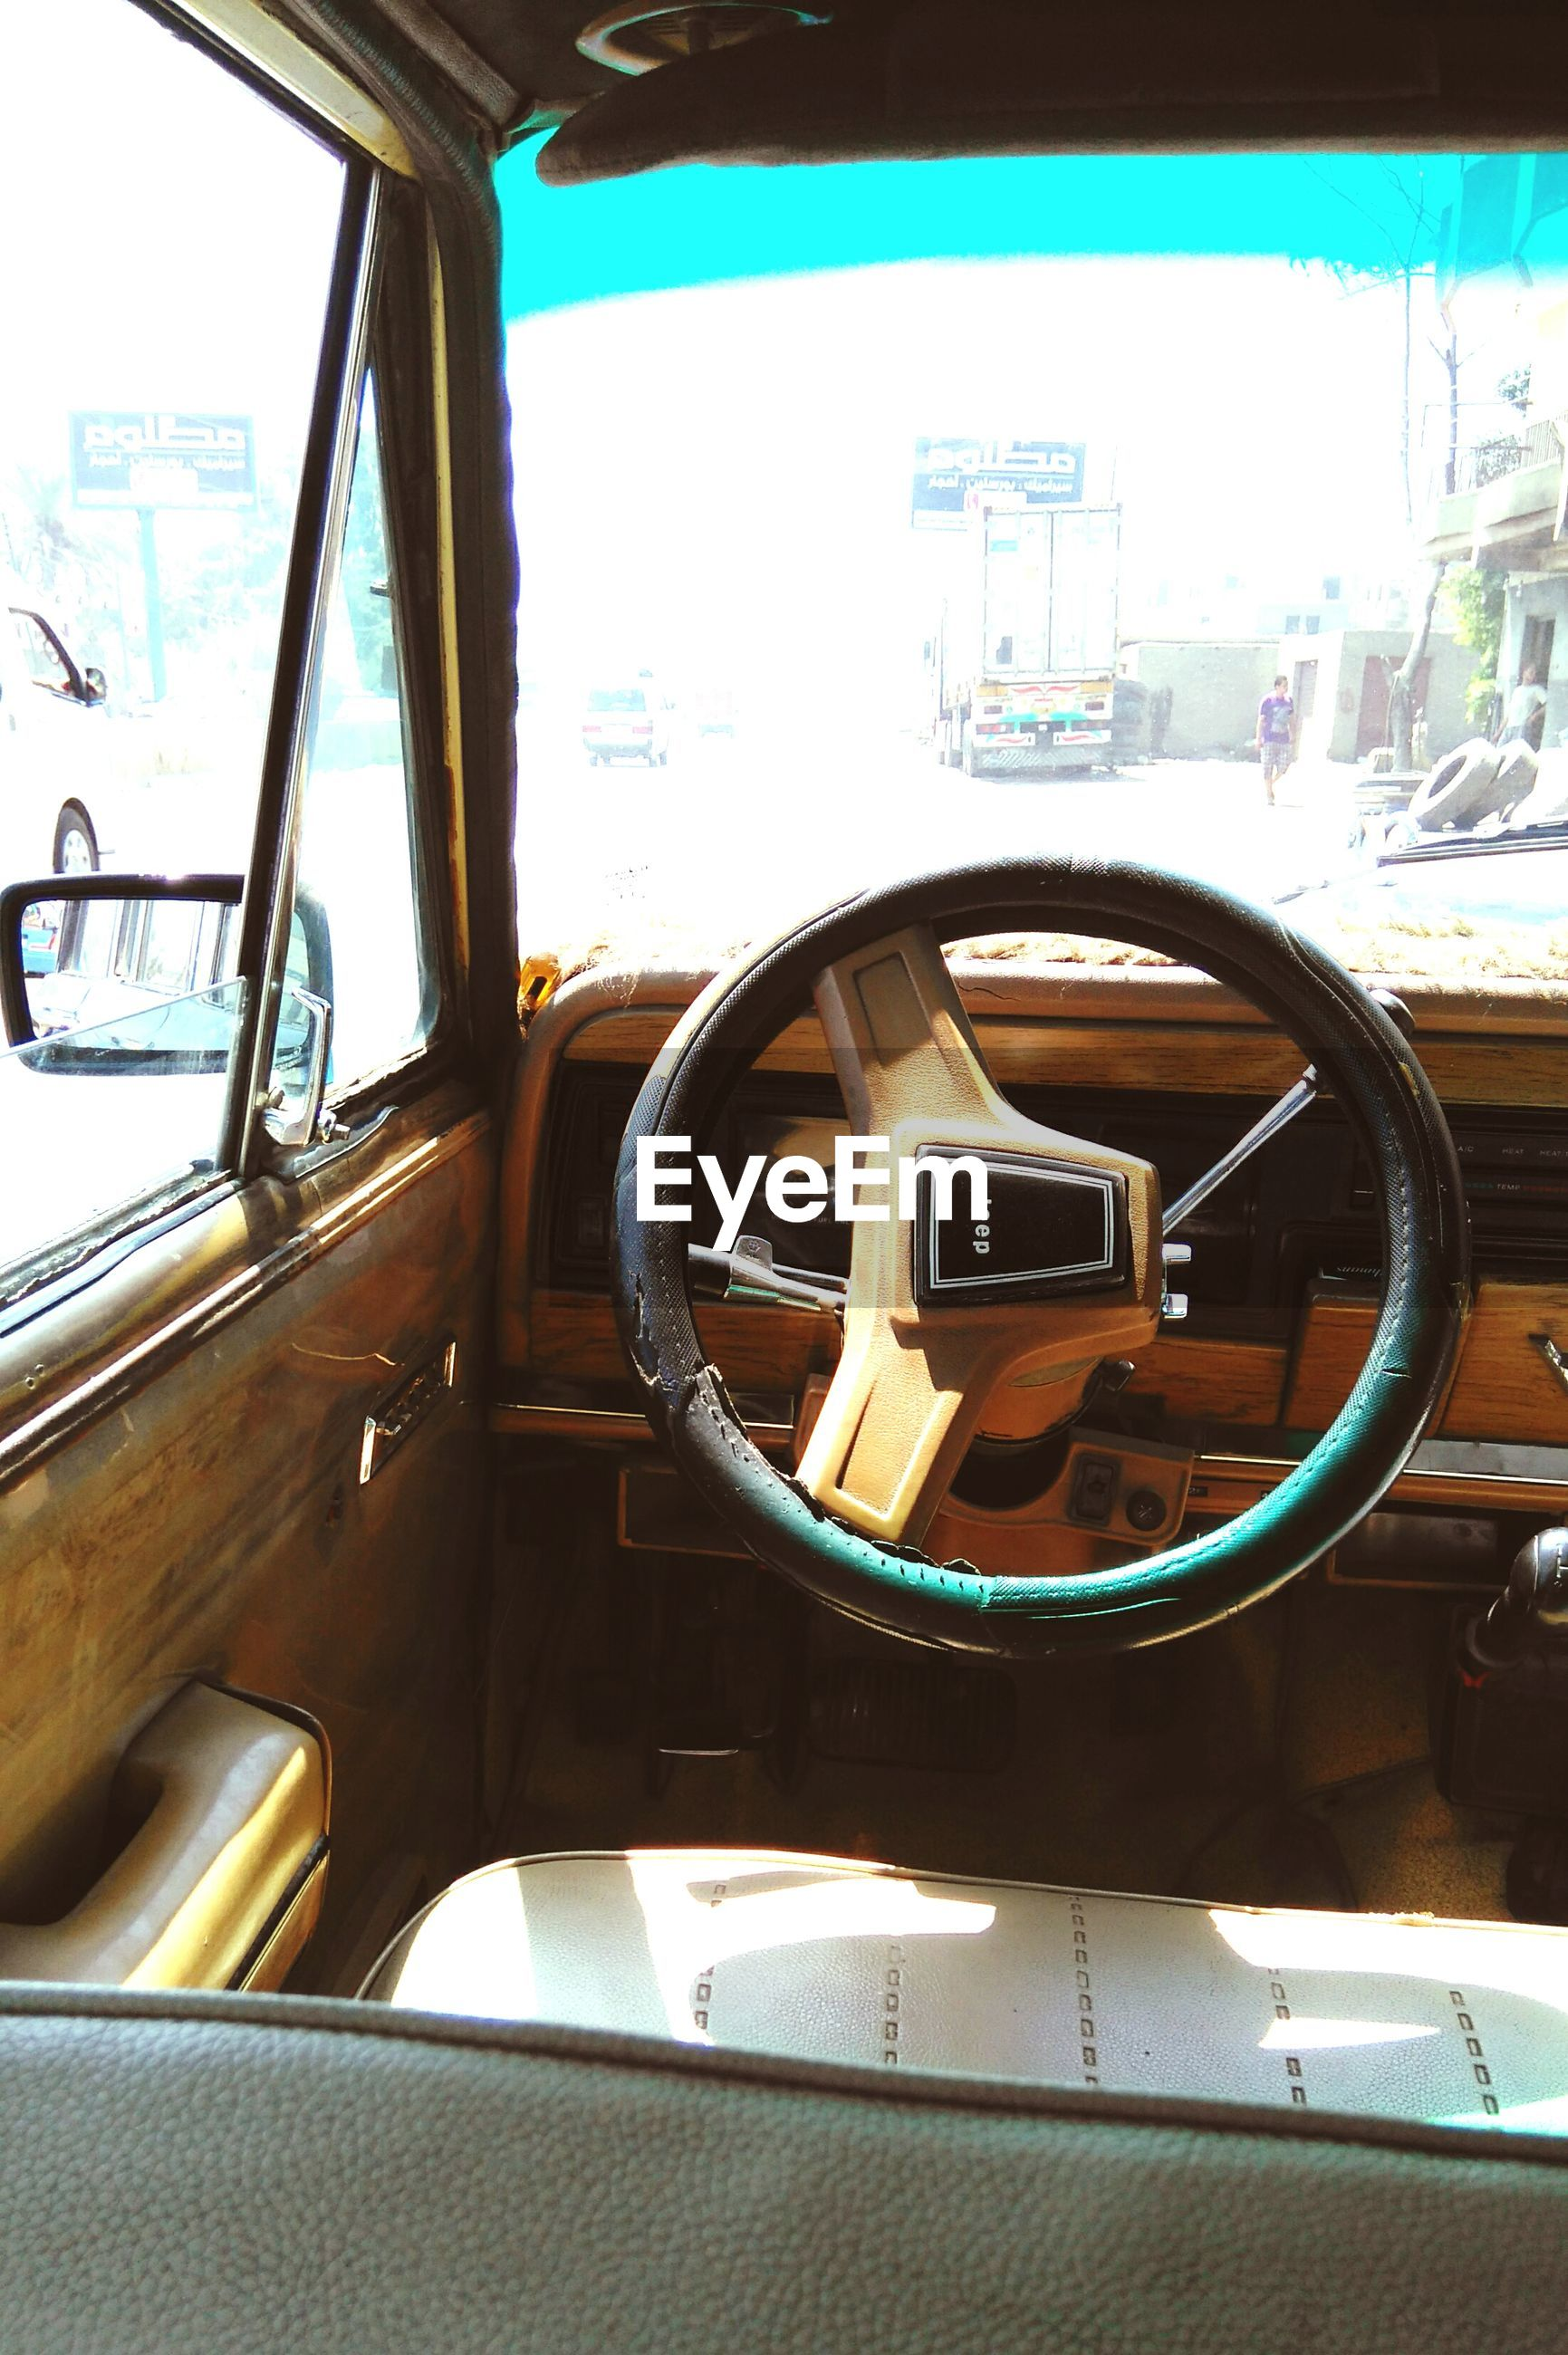 transportation, indoors, mode of transport, window, built structure, architecture, land vehicle, glass - material, vehicle interior, text, day, communication, railing, no people, car, western script, close-up, reflection, transparent, clear sky